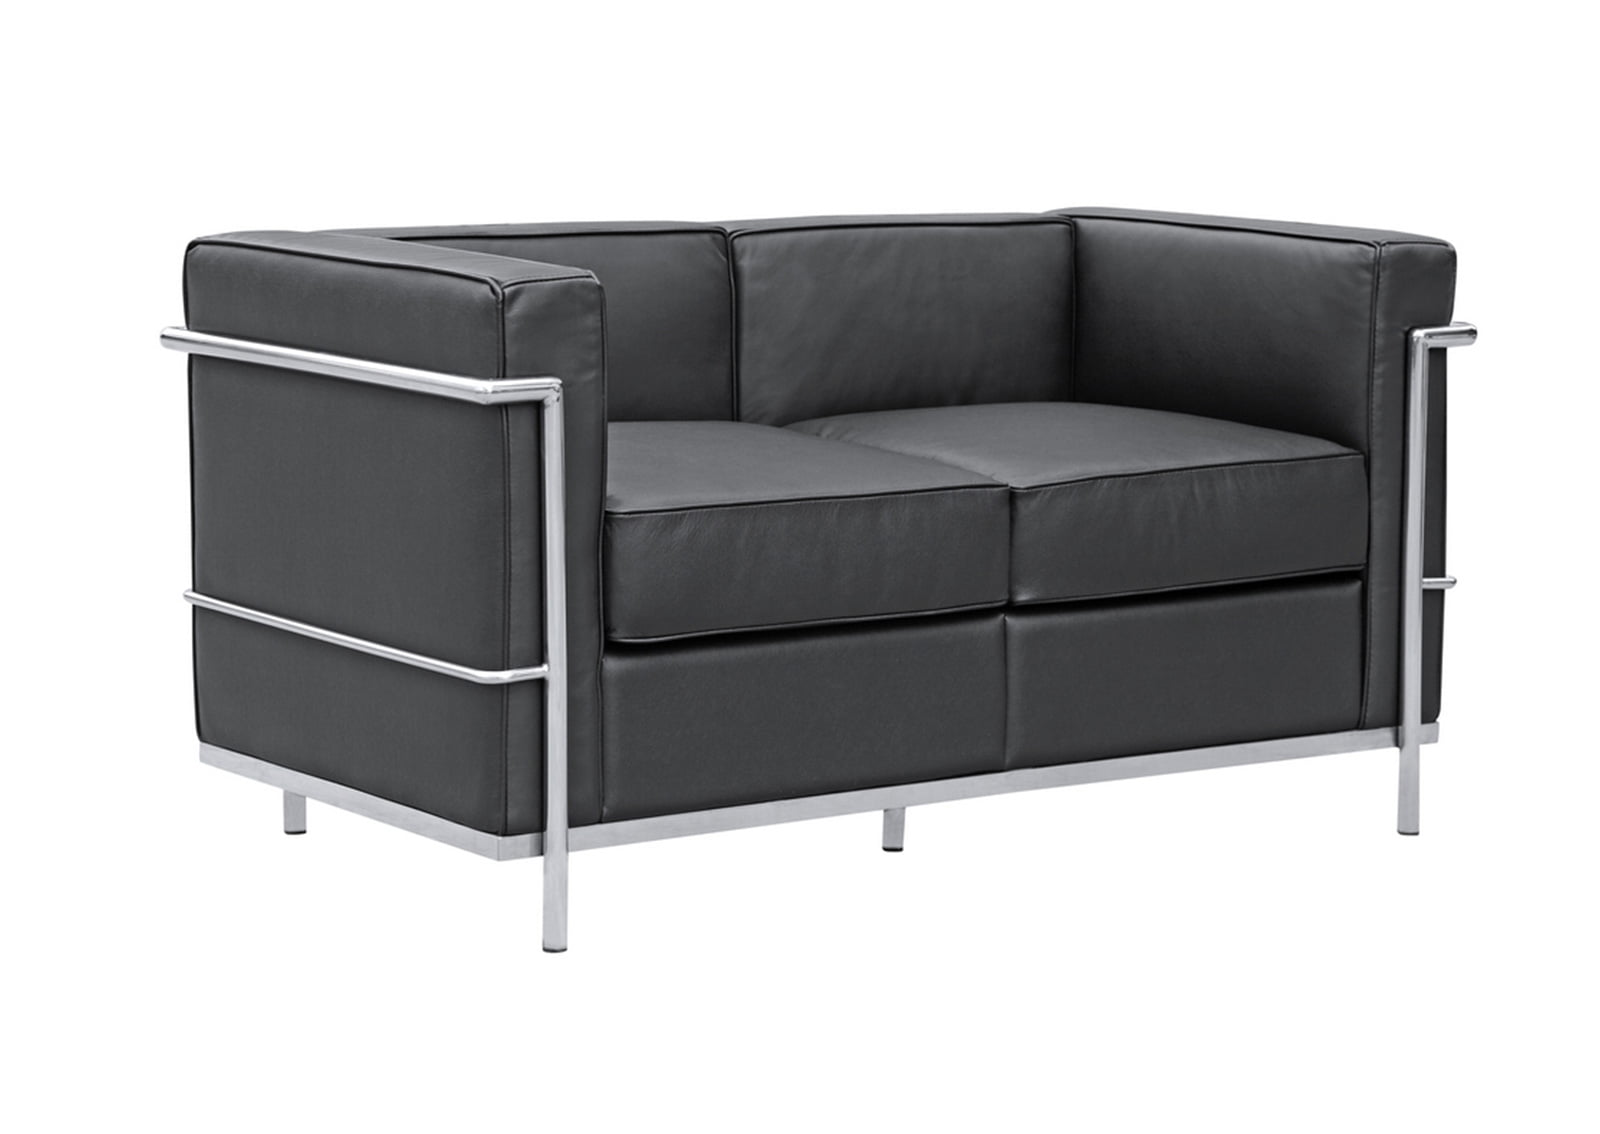 lc2 loveseat le corbusier style furnishplus. Black Bedroom Furniture Sets. Home Design Ideas